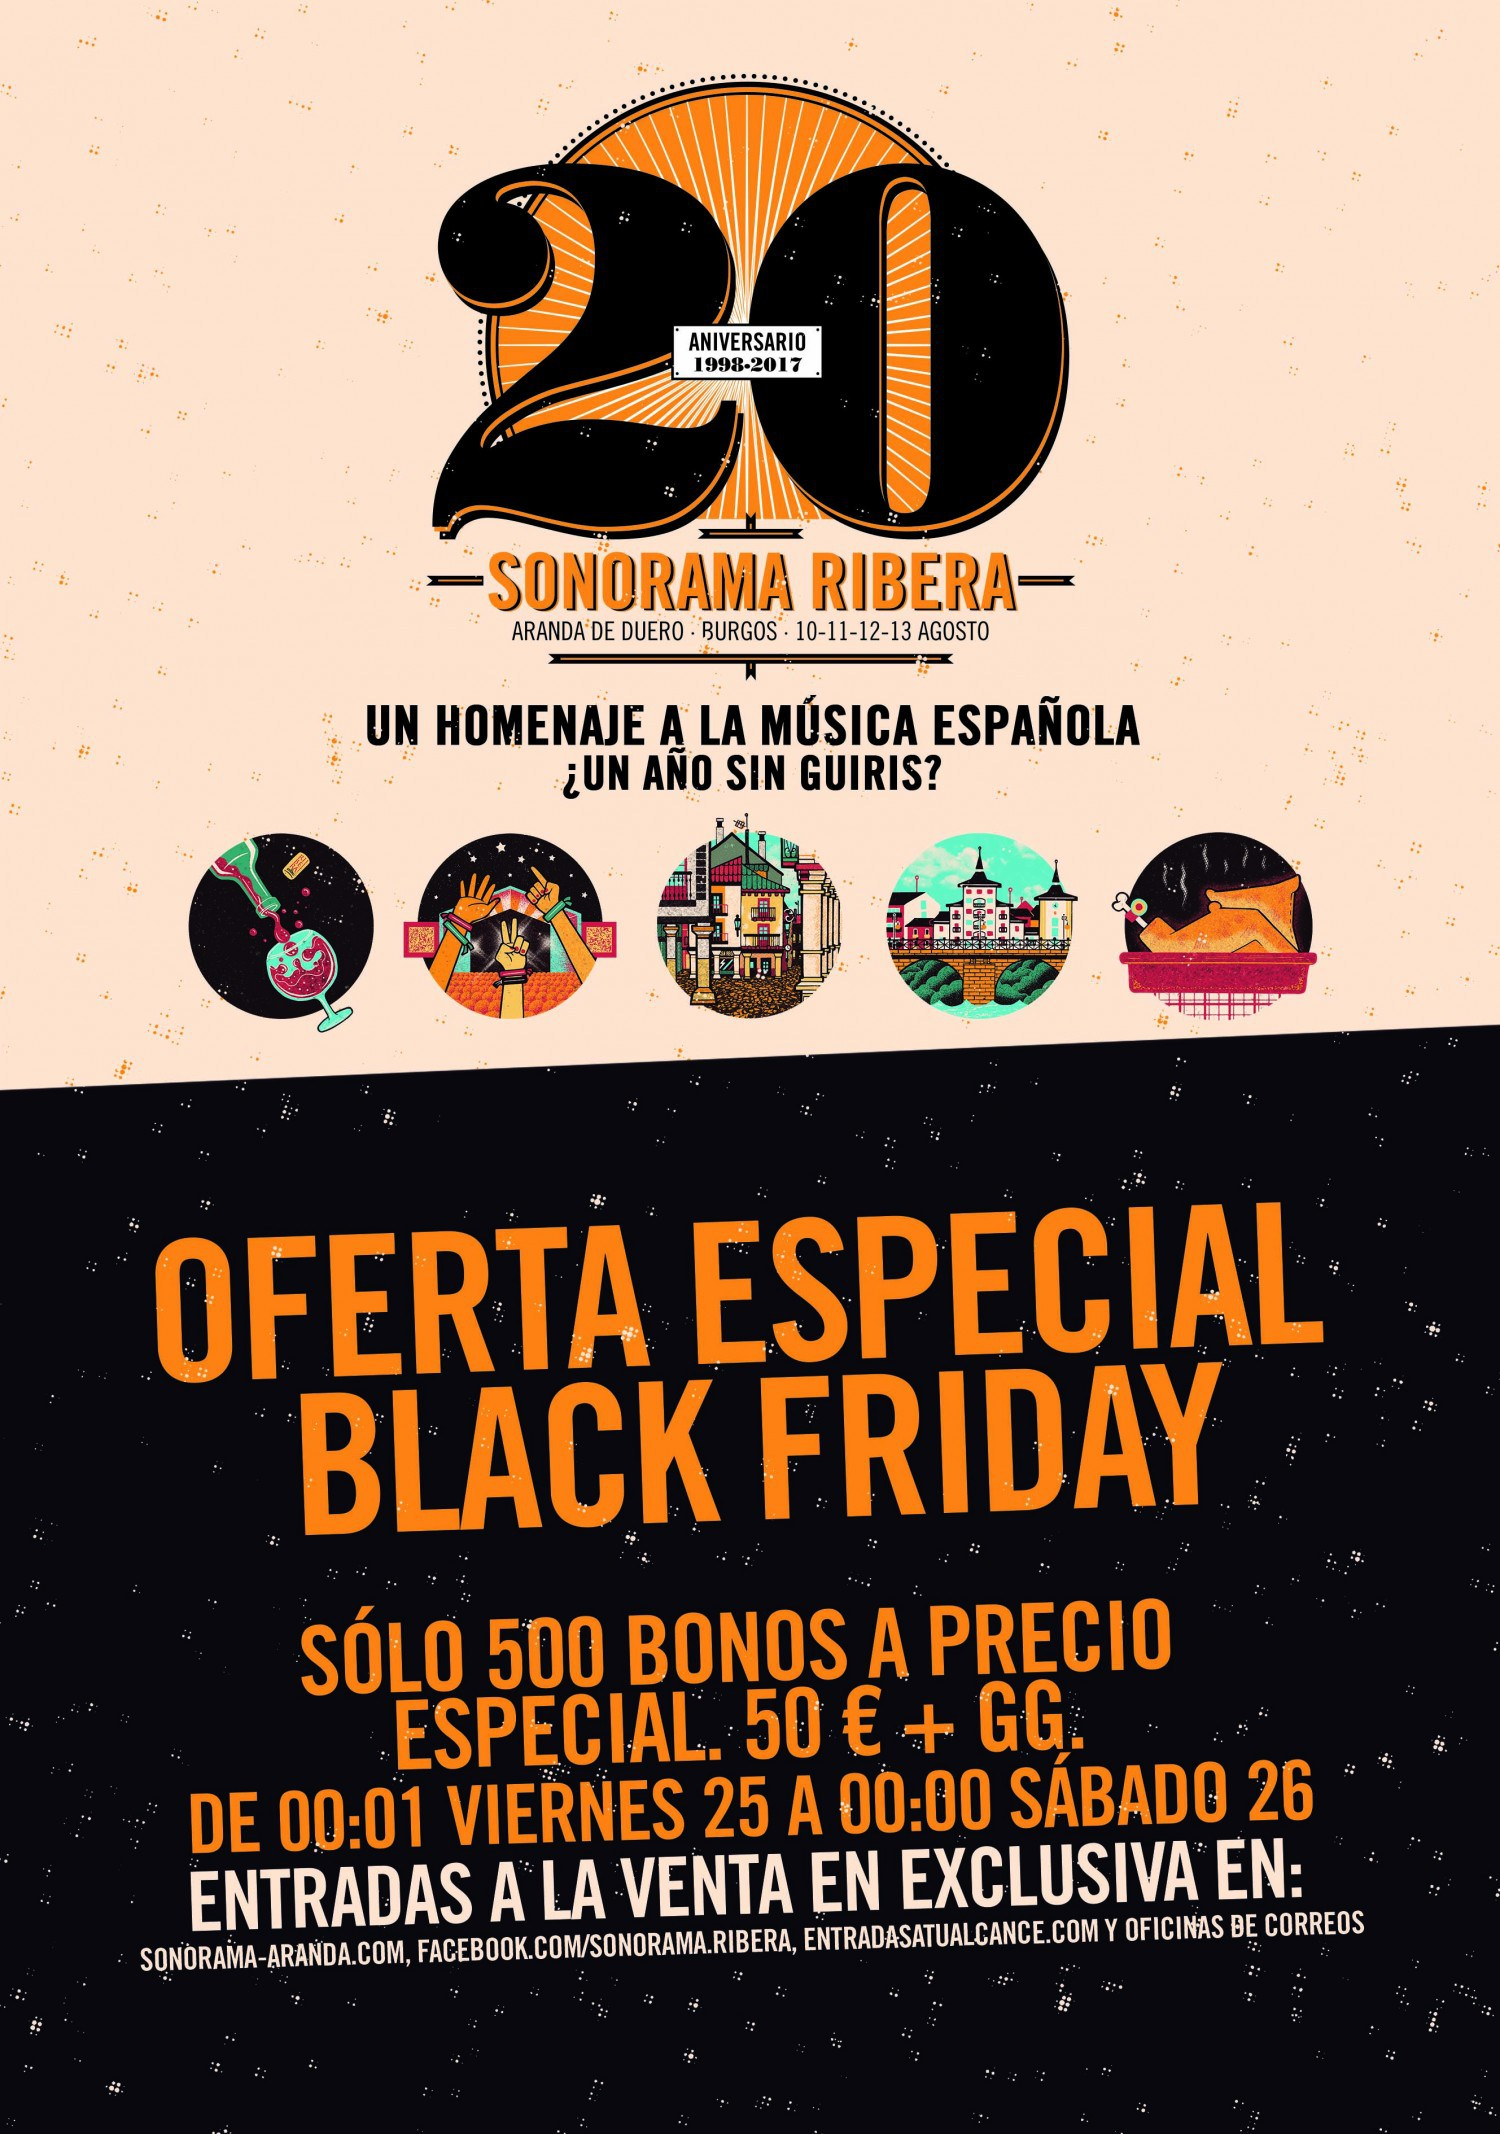 sonorama-ribera-2017-black-friday